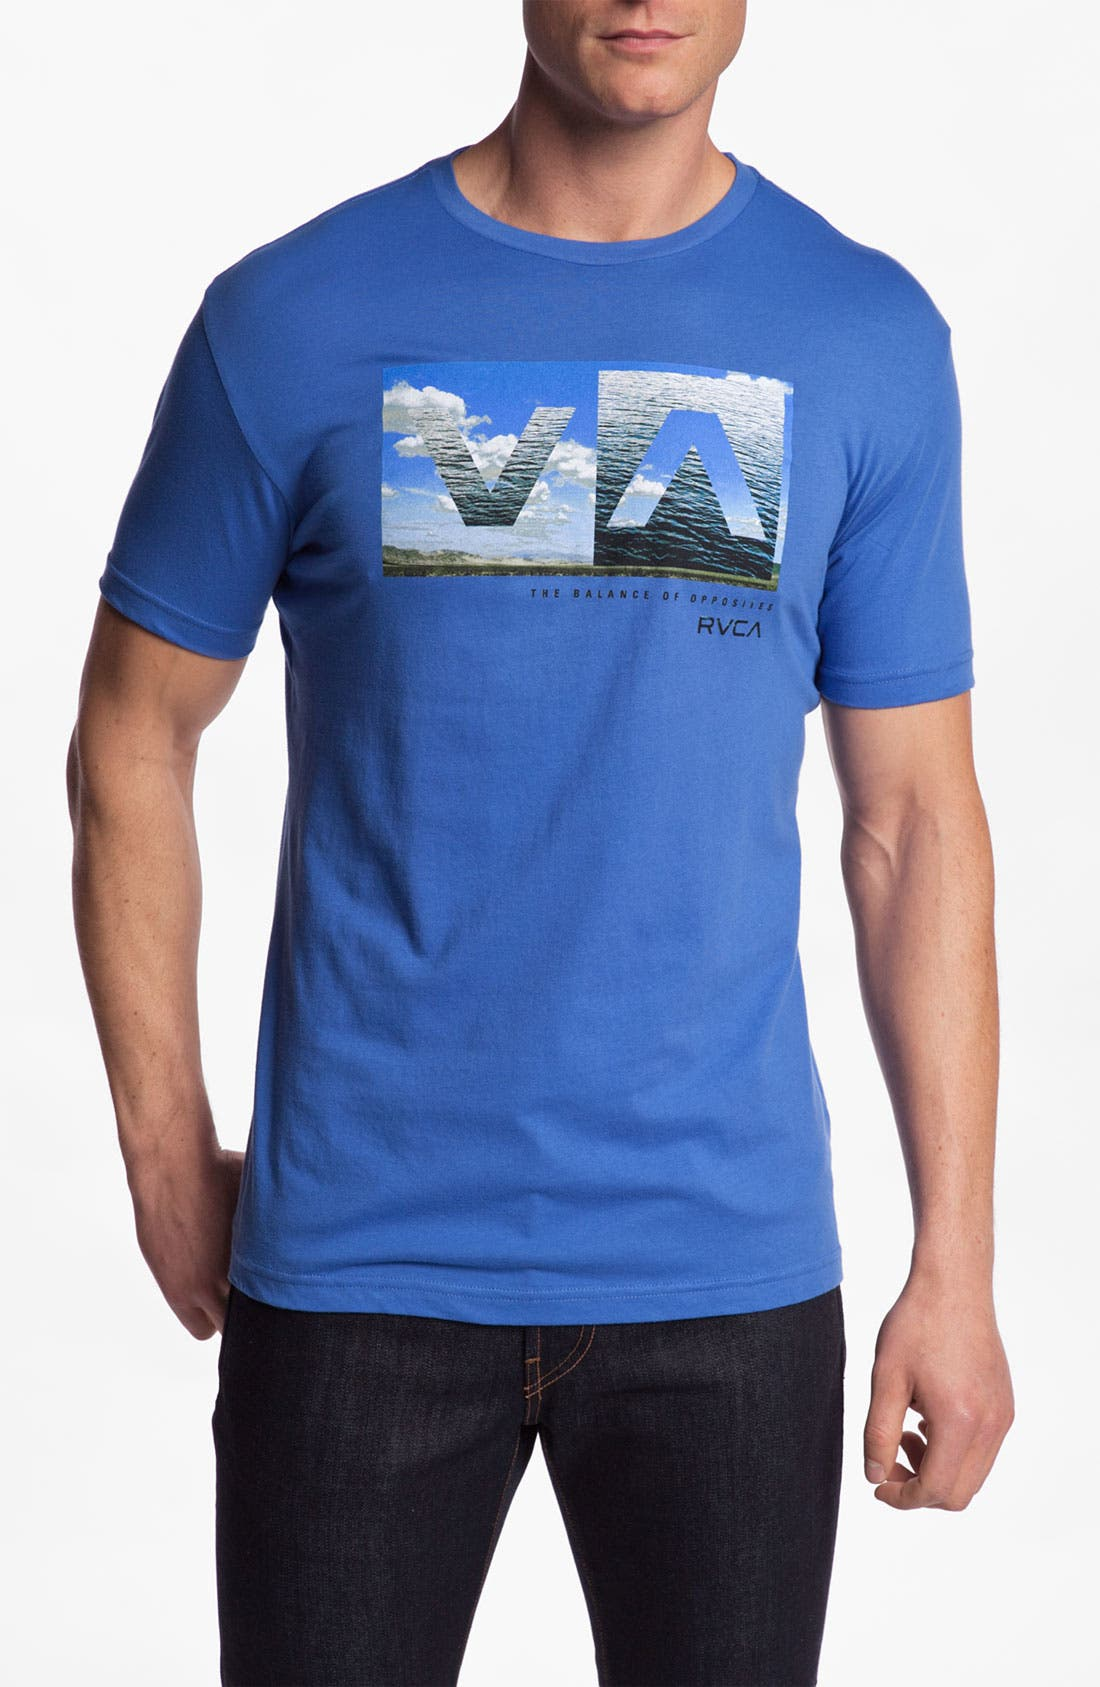 Alternate Image 1 Selected - RVCA 'A to B' Graphic T-Shirt